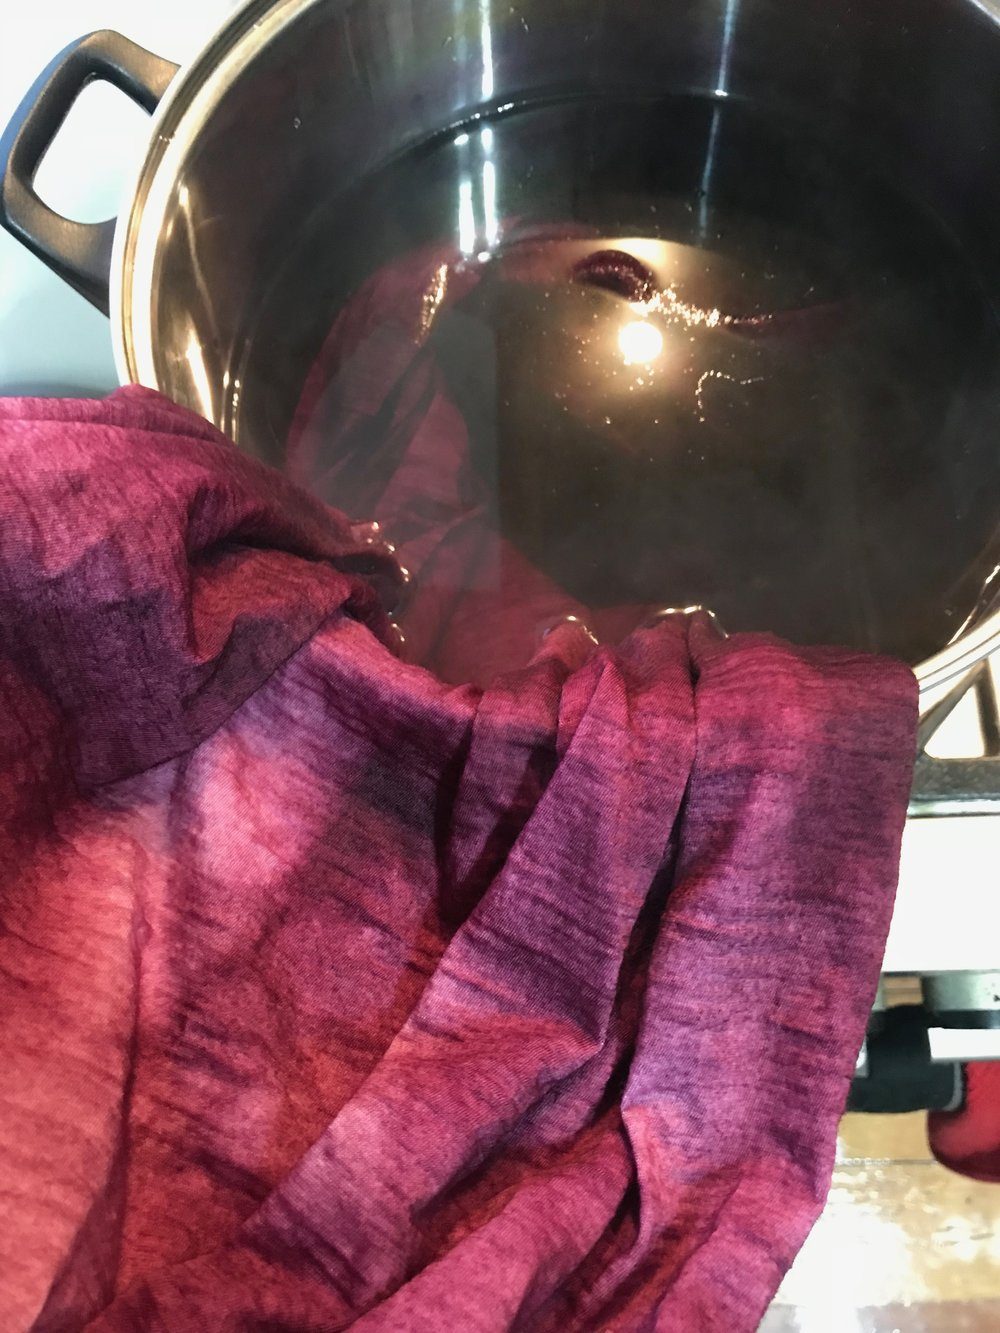 acid dyed dress in progress